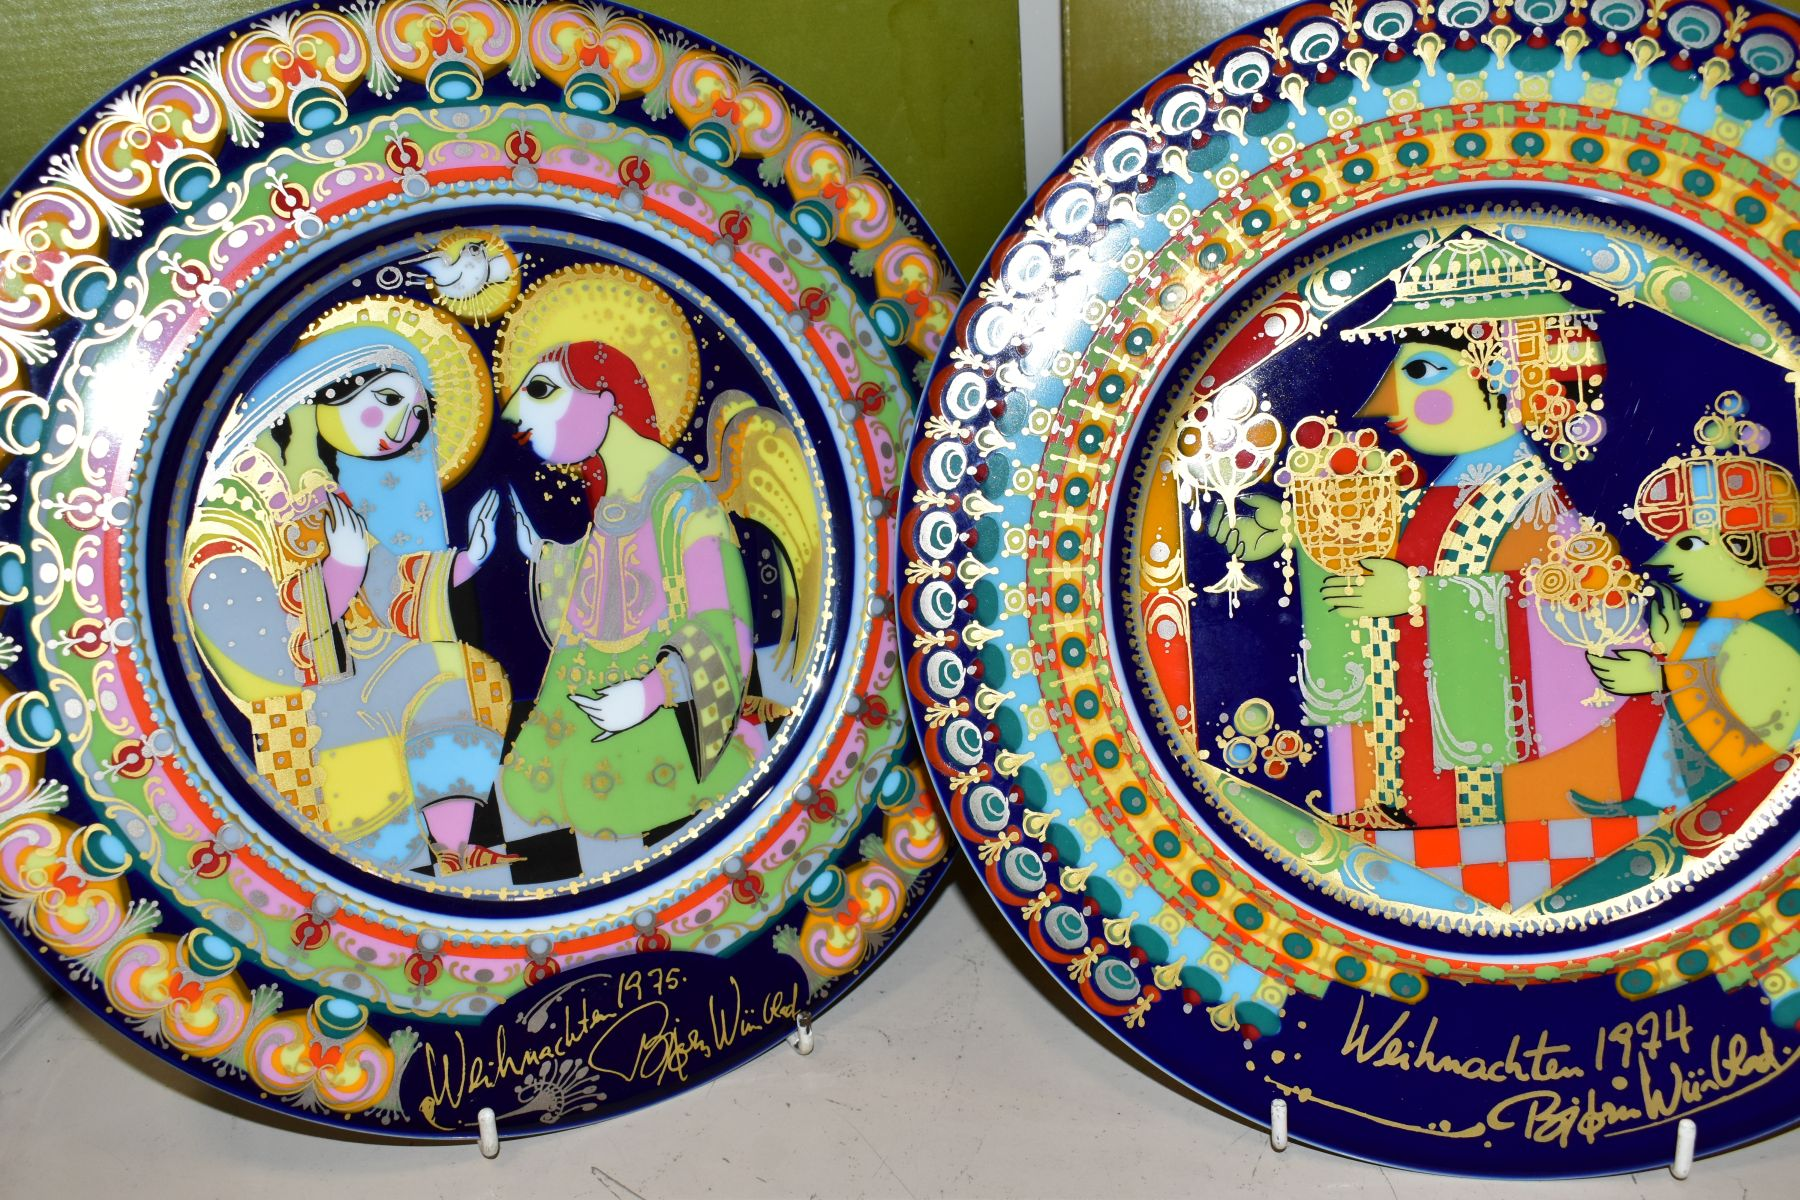 THREE BOXED ROSENTHAL CHRISTMAS PLATES, 1973, 1974 and 1975 all signed by Bijorn Wiinbald - Image 2 of 12